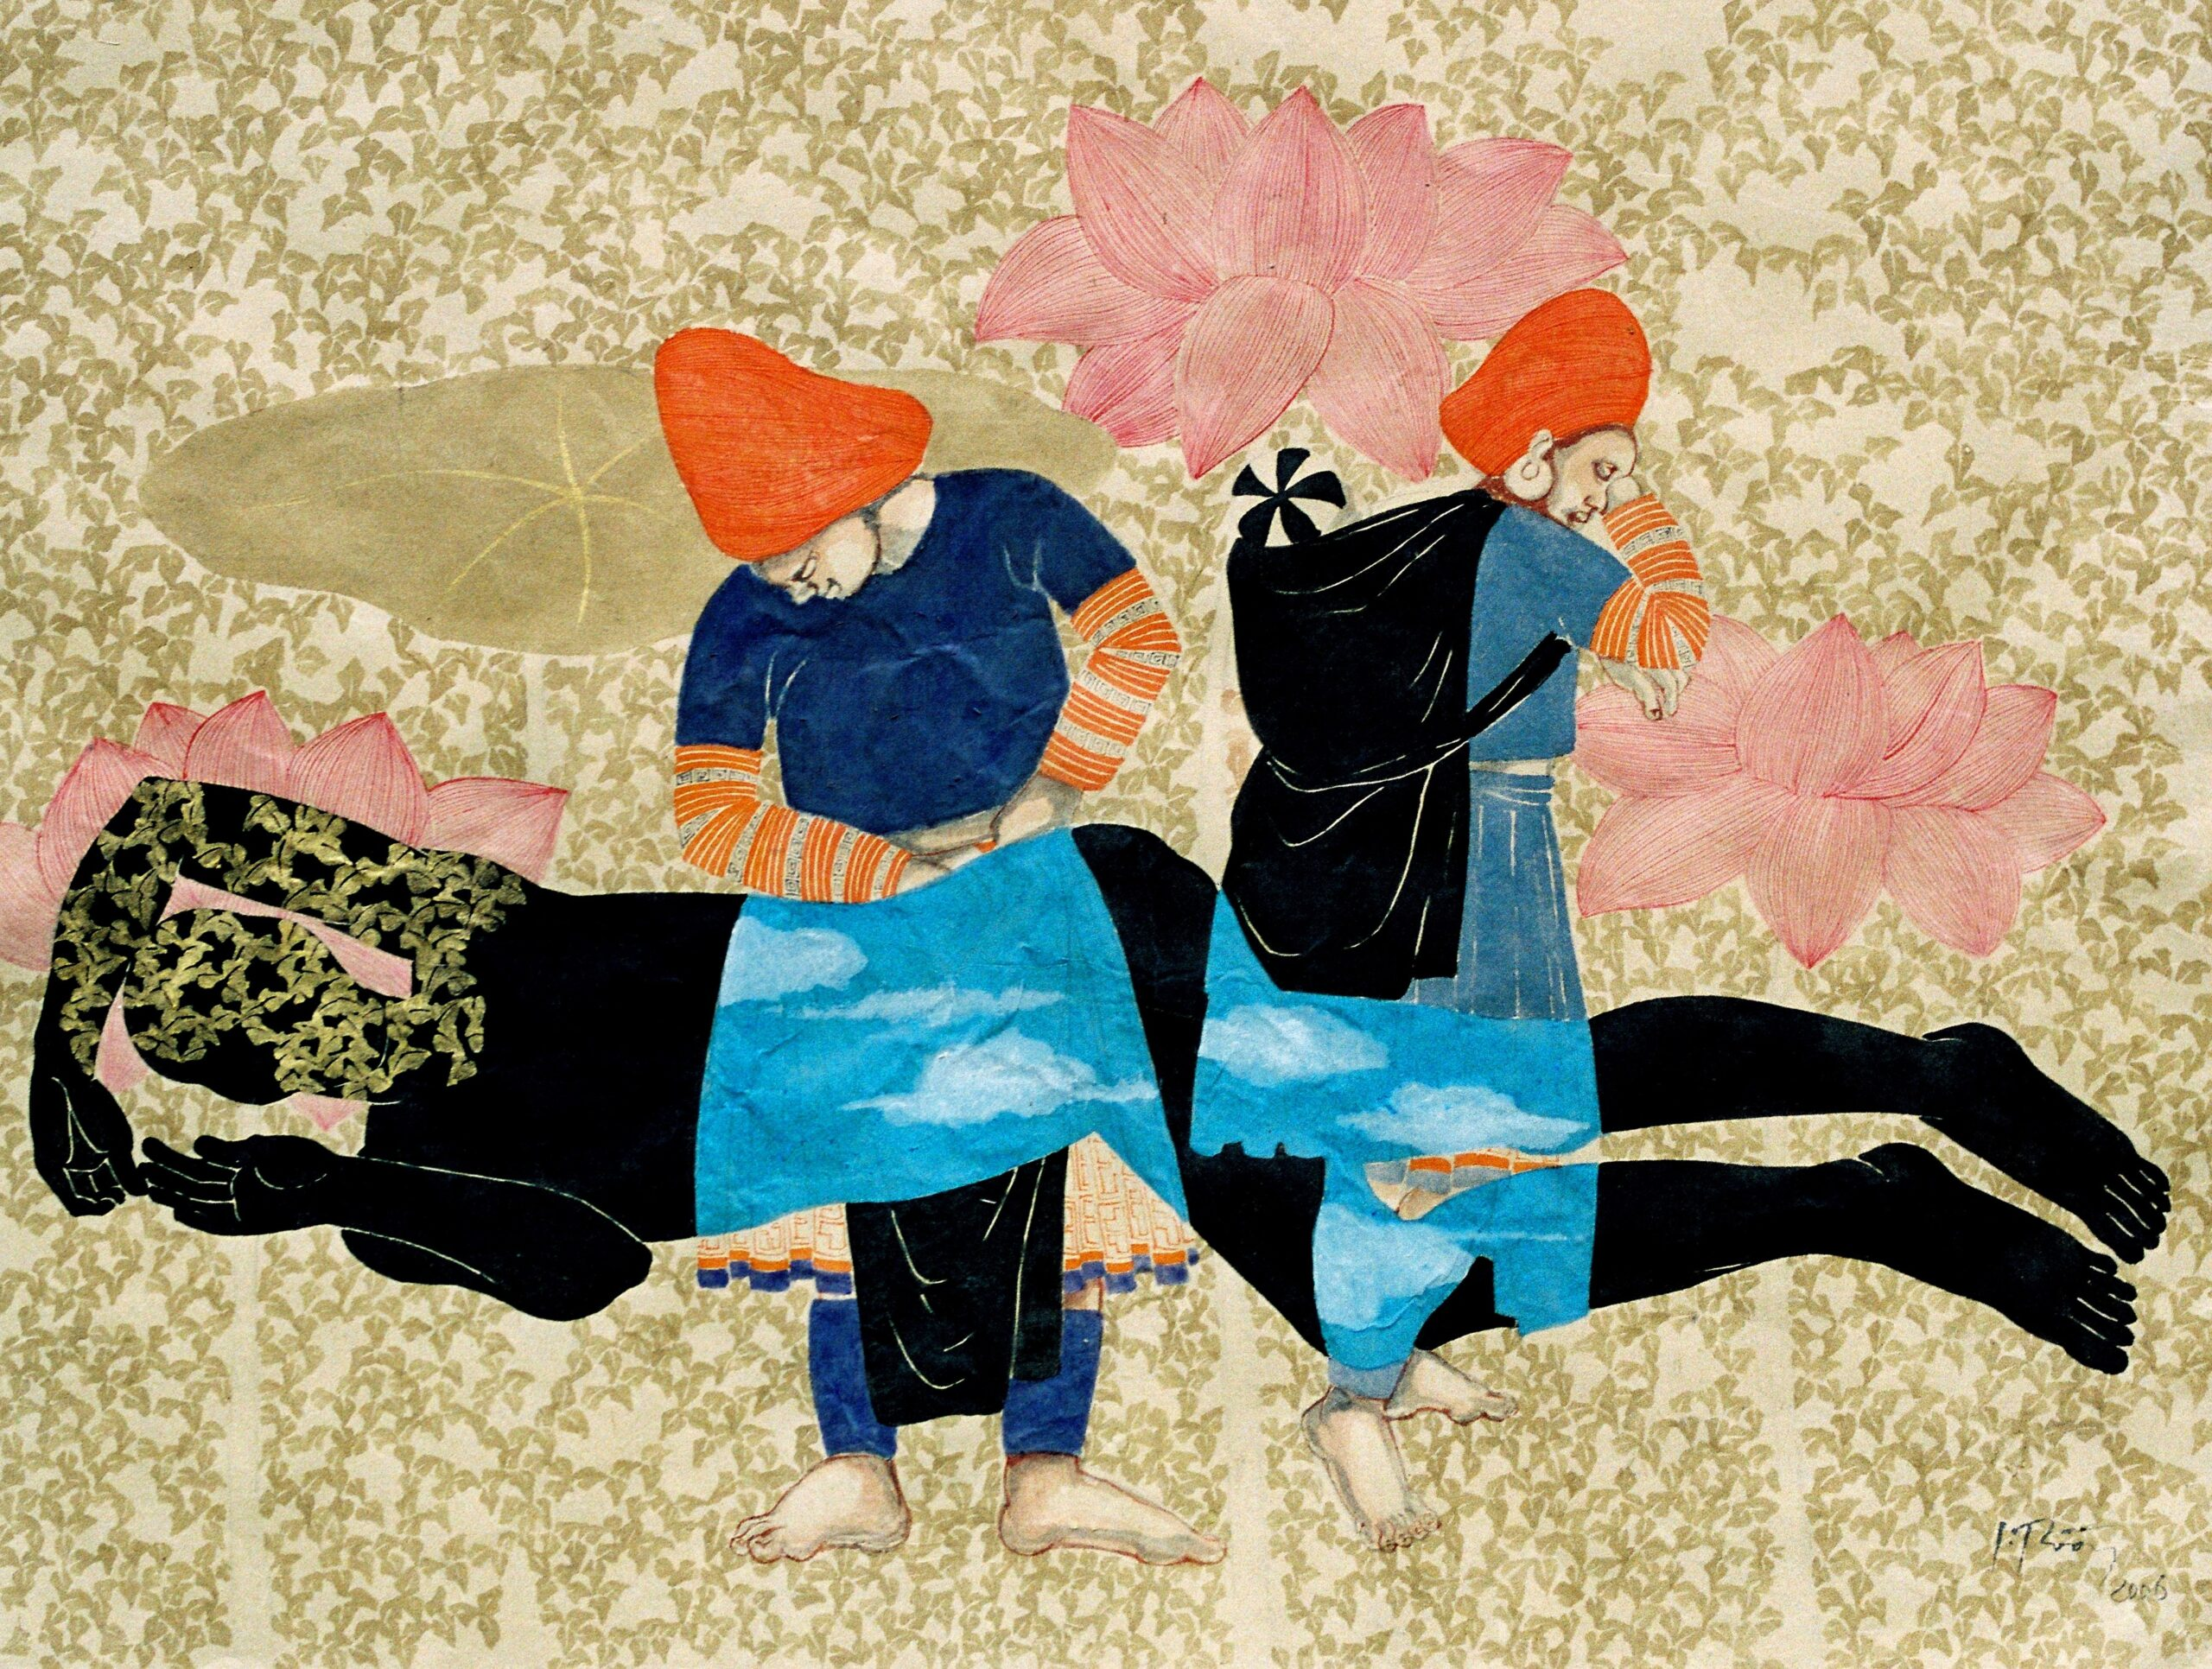 Beckoning to Bliss by Dinh Thi Tham Poong, watercolour on handmade paper, 2006, 80 x 60 cm